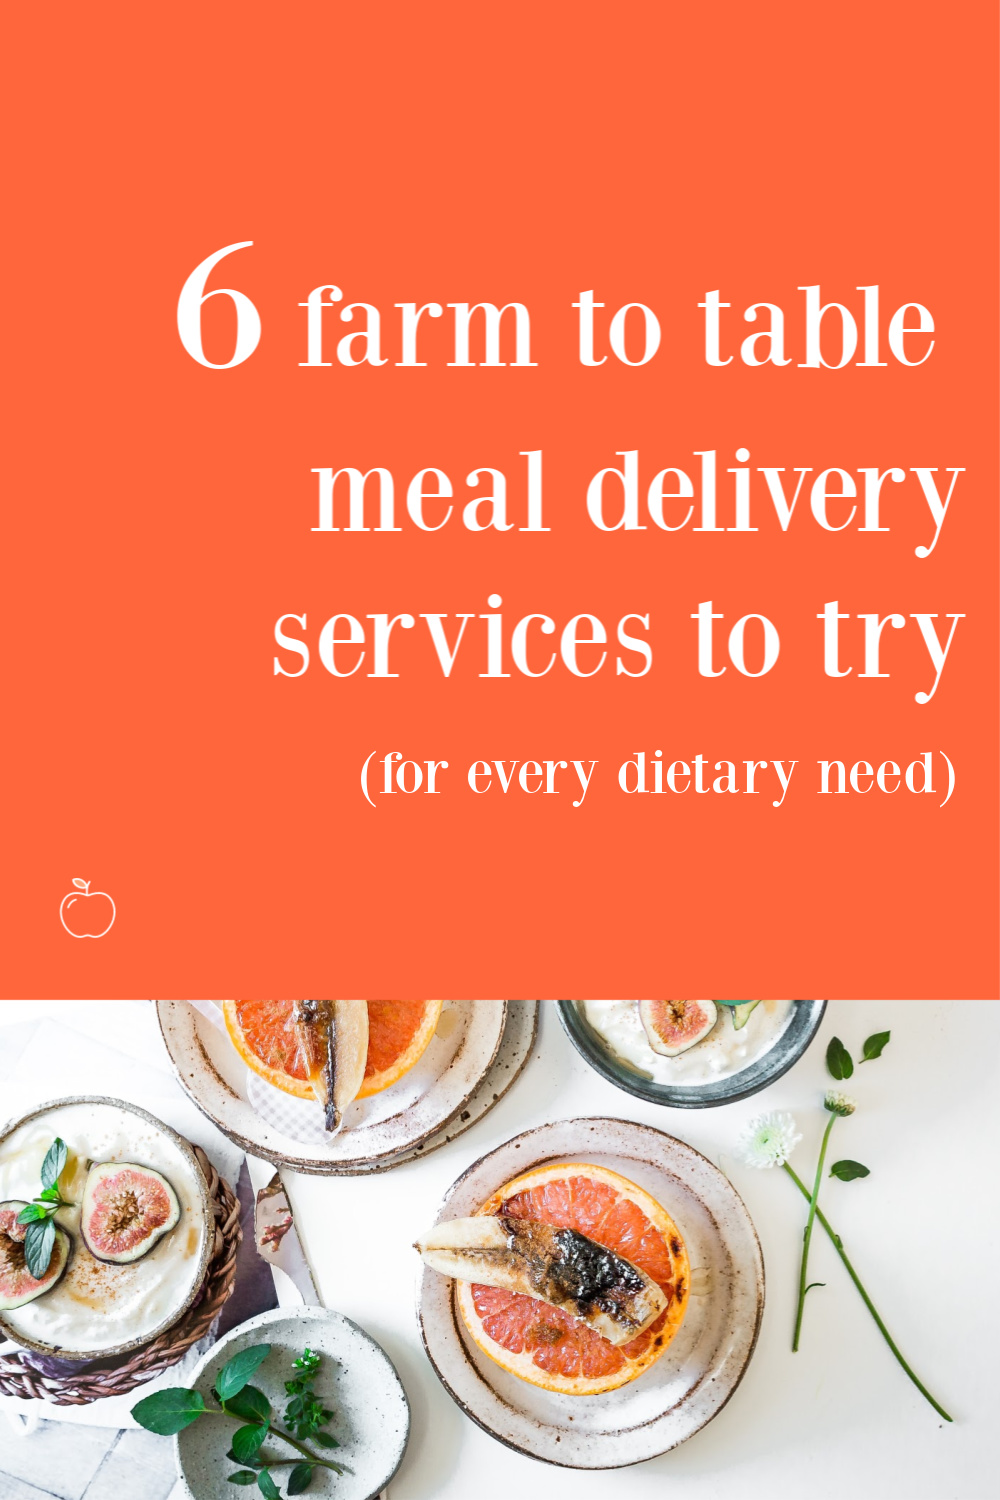 6 meal farm to table meal delivery services to try